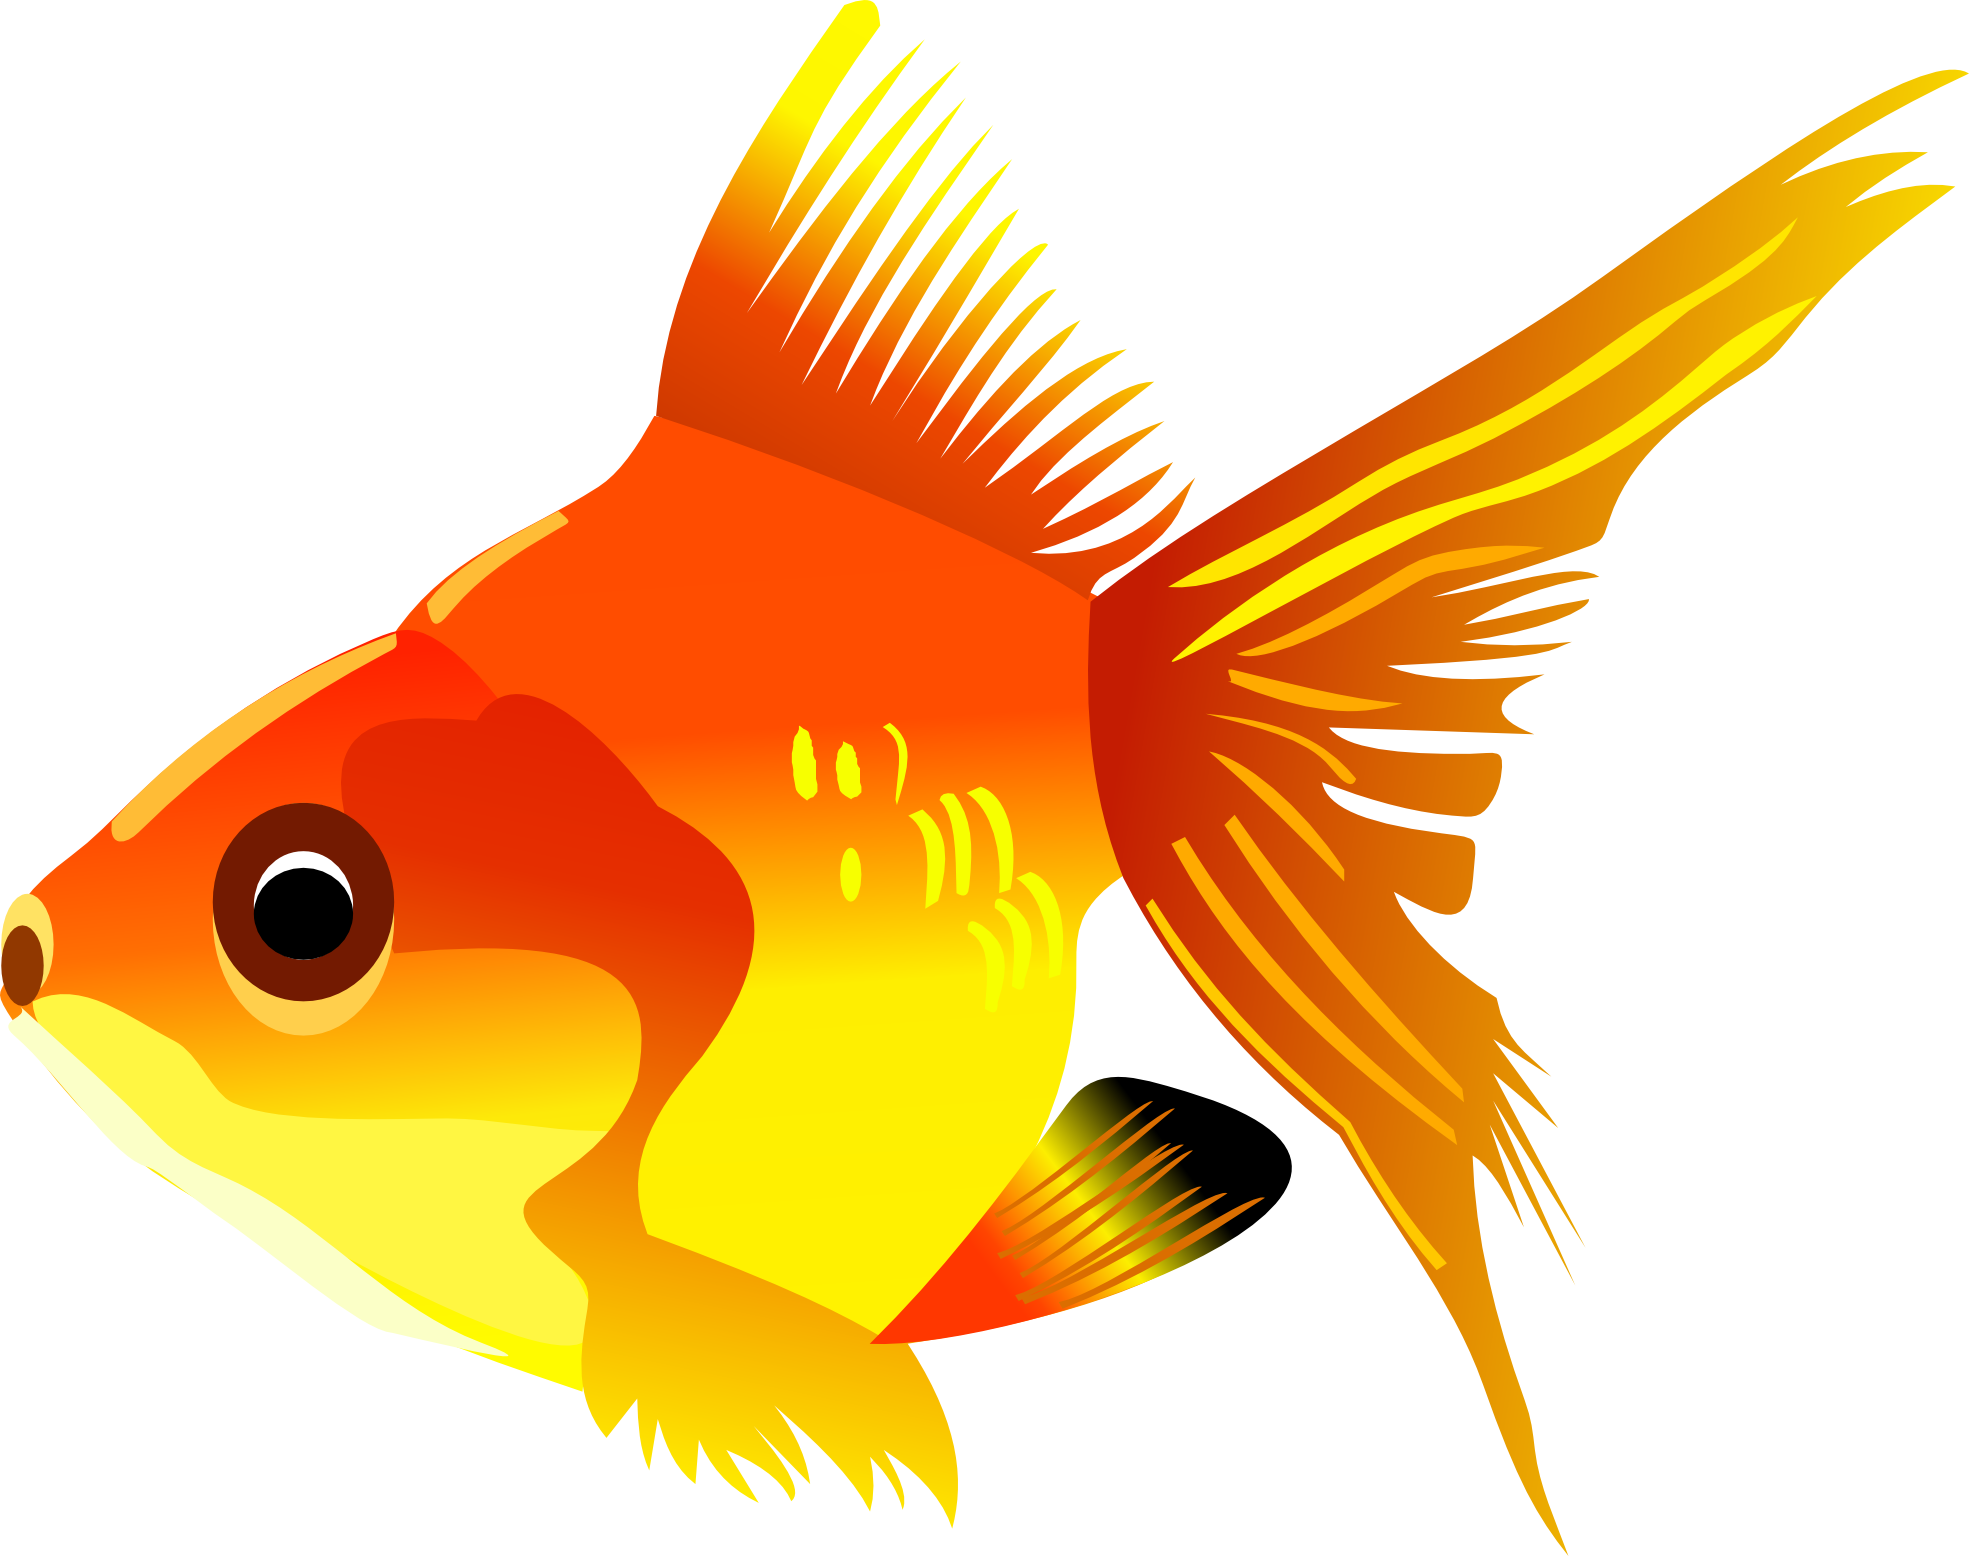 Yellow fish background clipart clip freeuse download Fish Fifteen | Isolated Stock Photo by noBACKS.com clip freeuse download